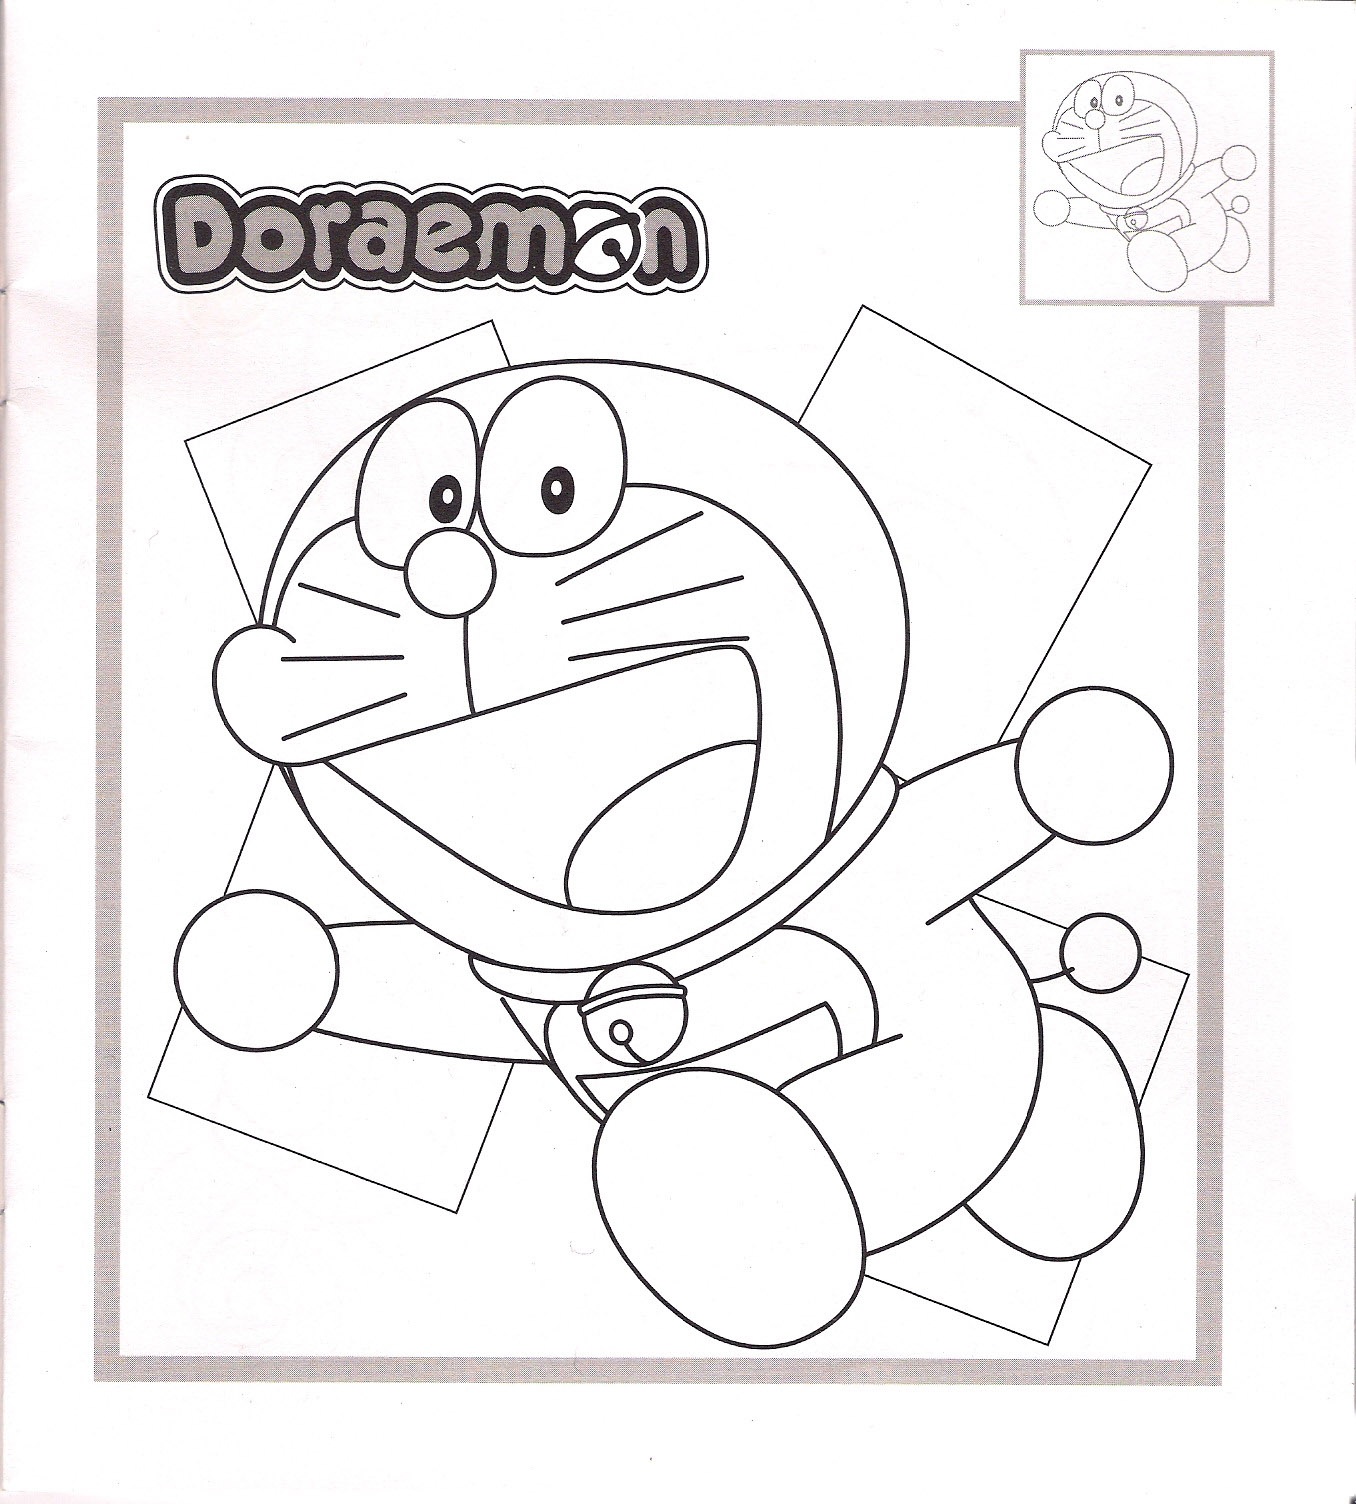 Doraemon Coloring in Pages 9